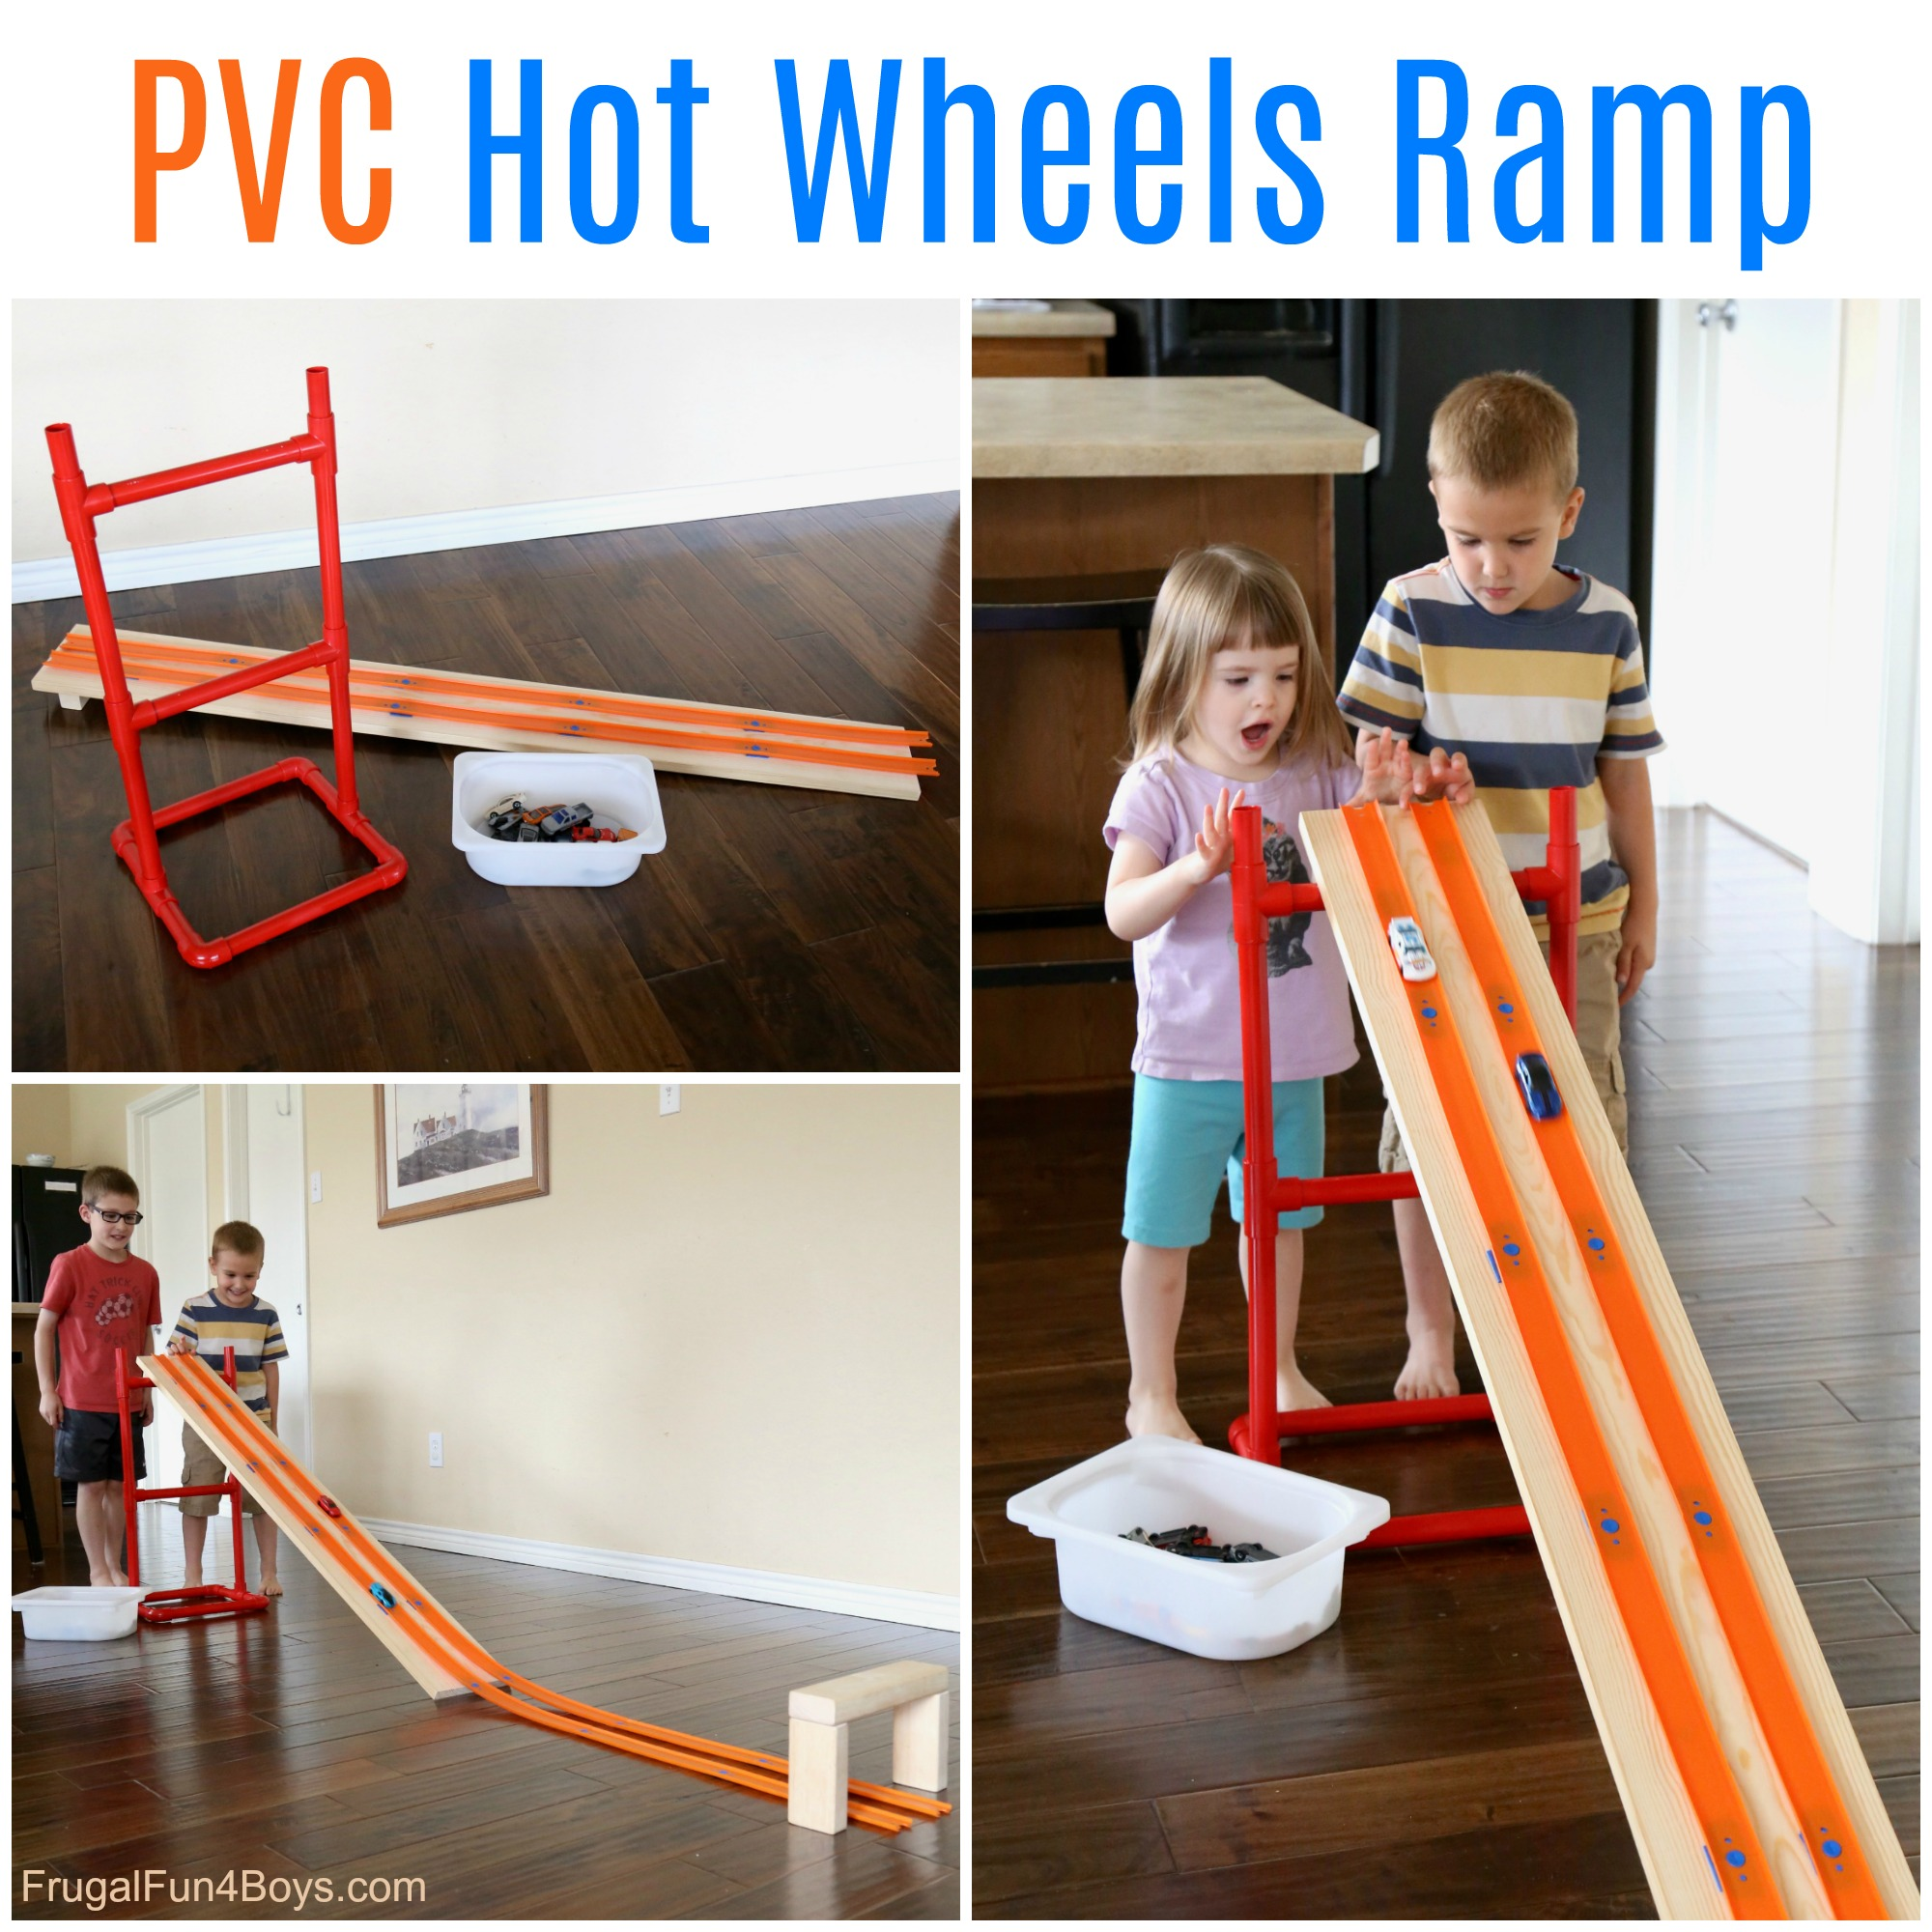 How To Make A Pvc Pipe Adjustable Hot Wheels Car Ramp